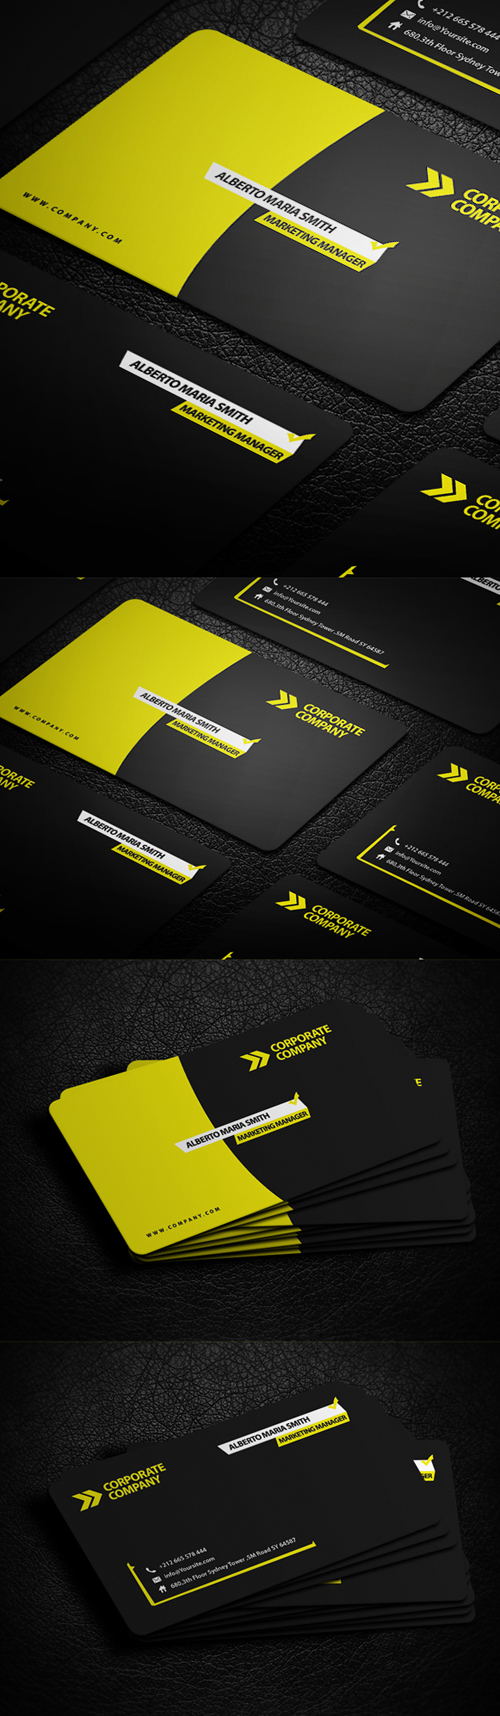 Business Cards Design: 50+ Amazing Examples to Inspire You - 7